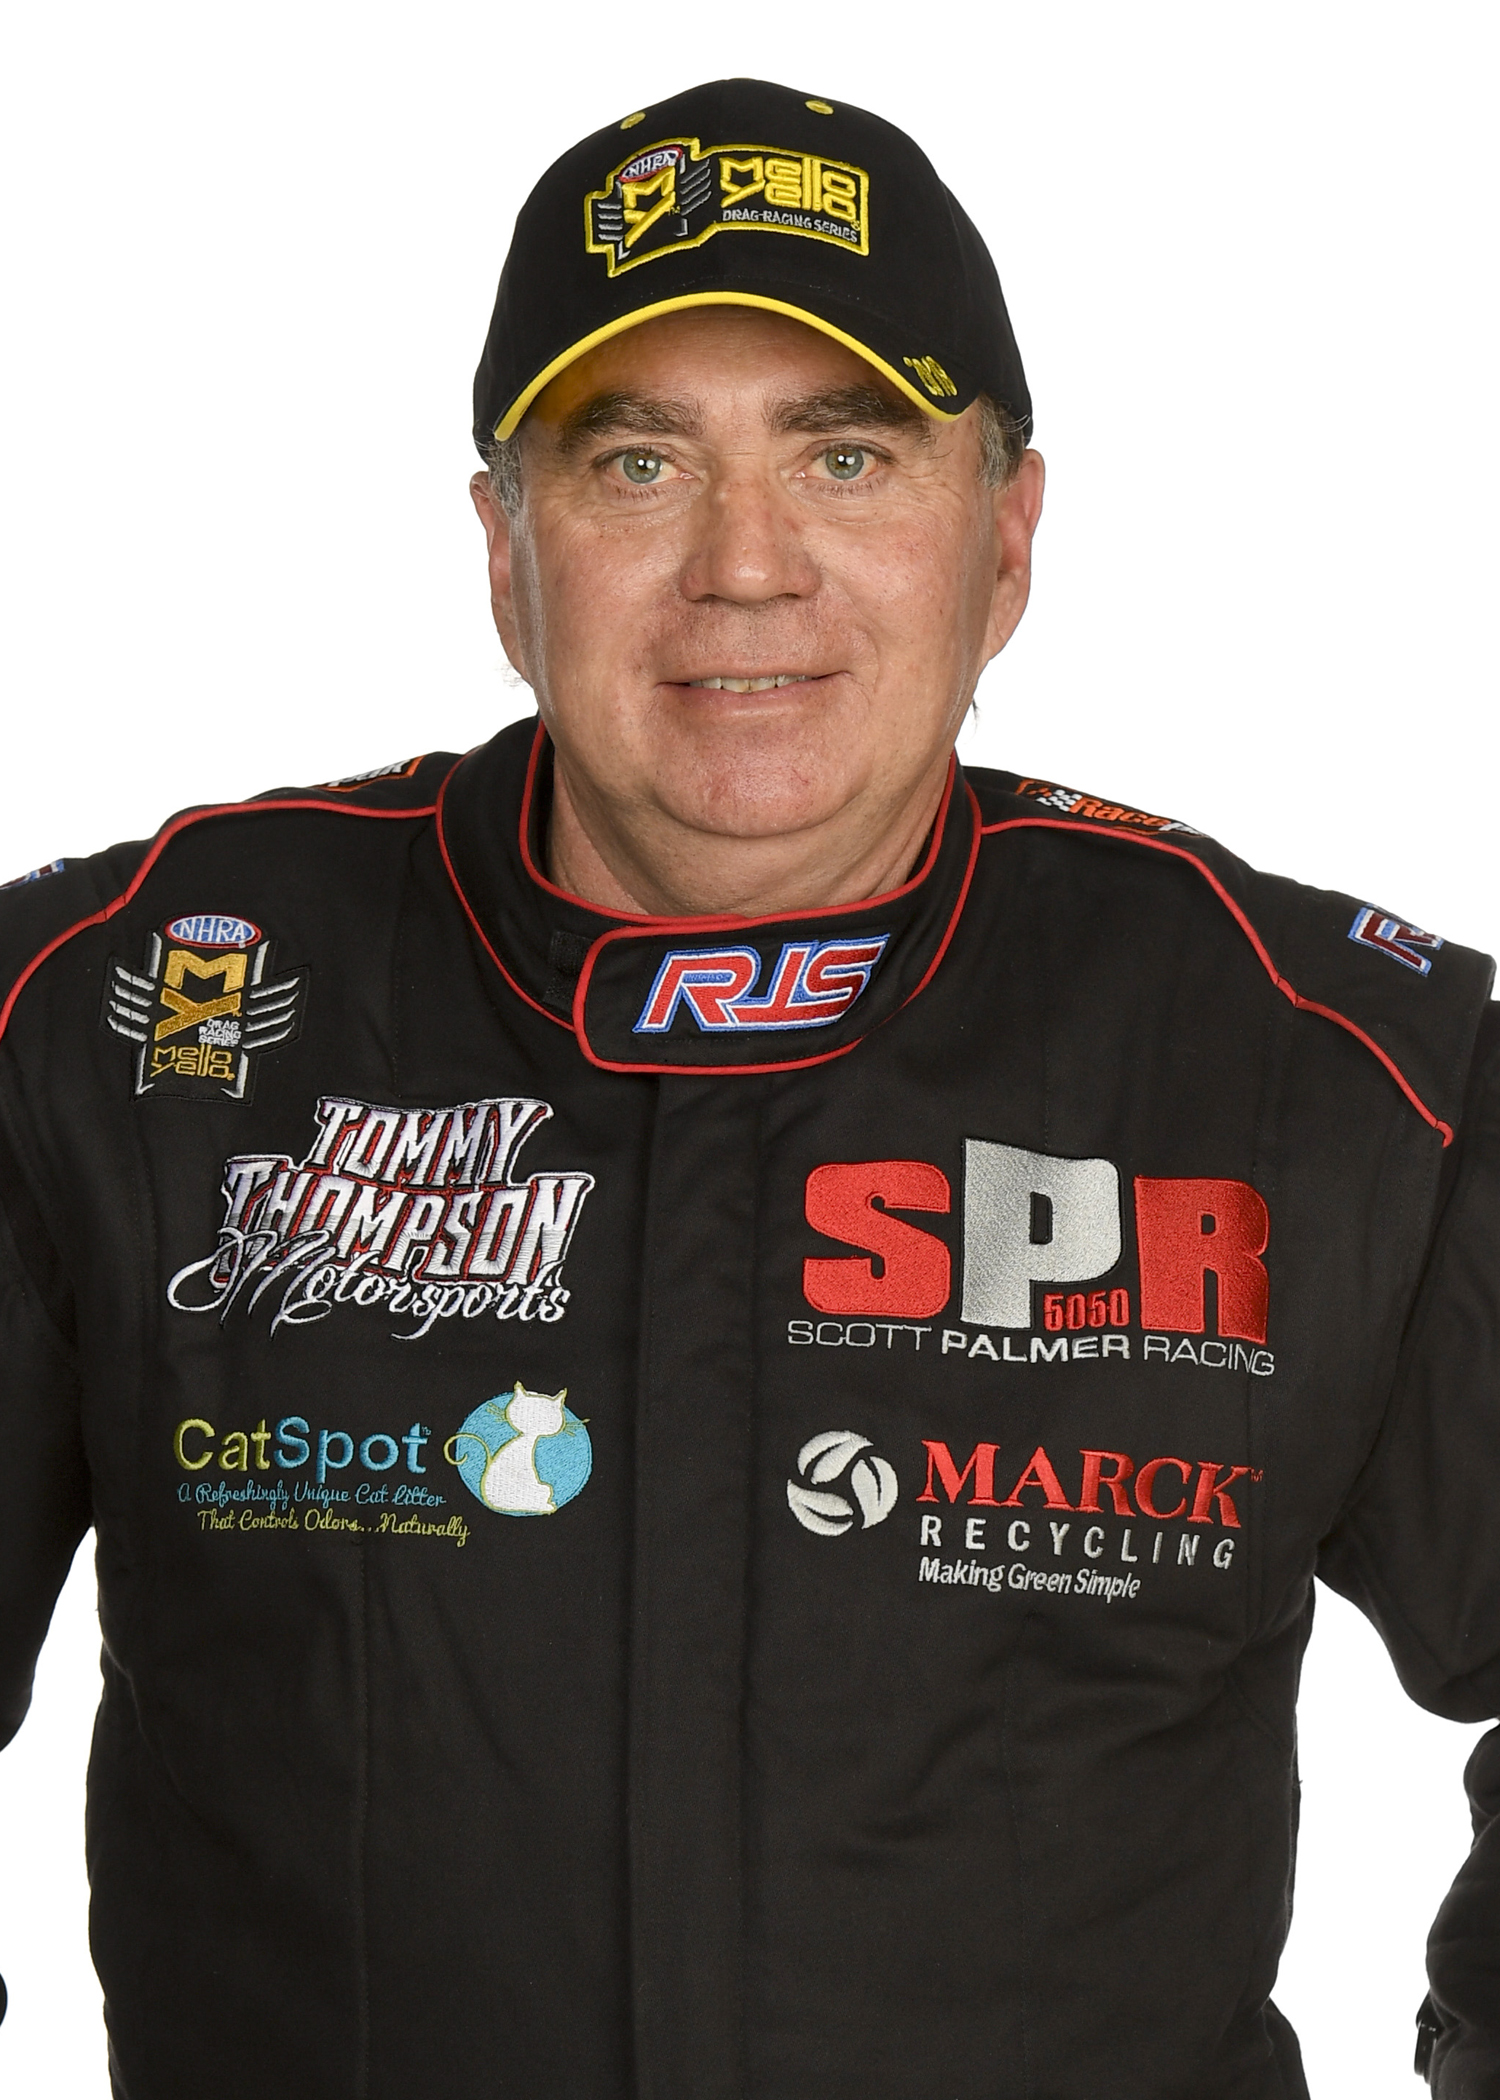 NHRA - Top Fuel - Scott Palmer